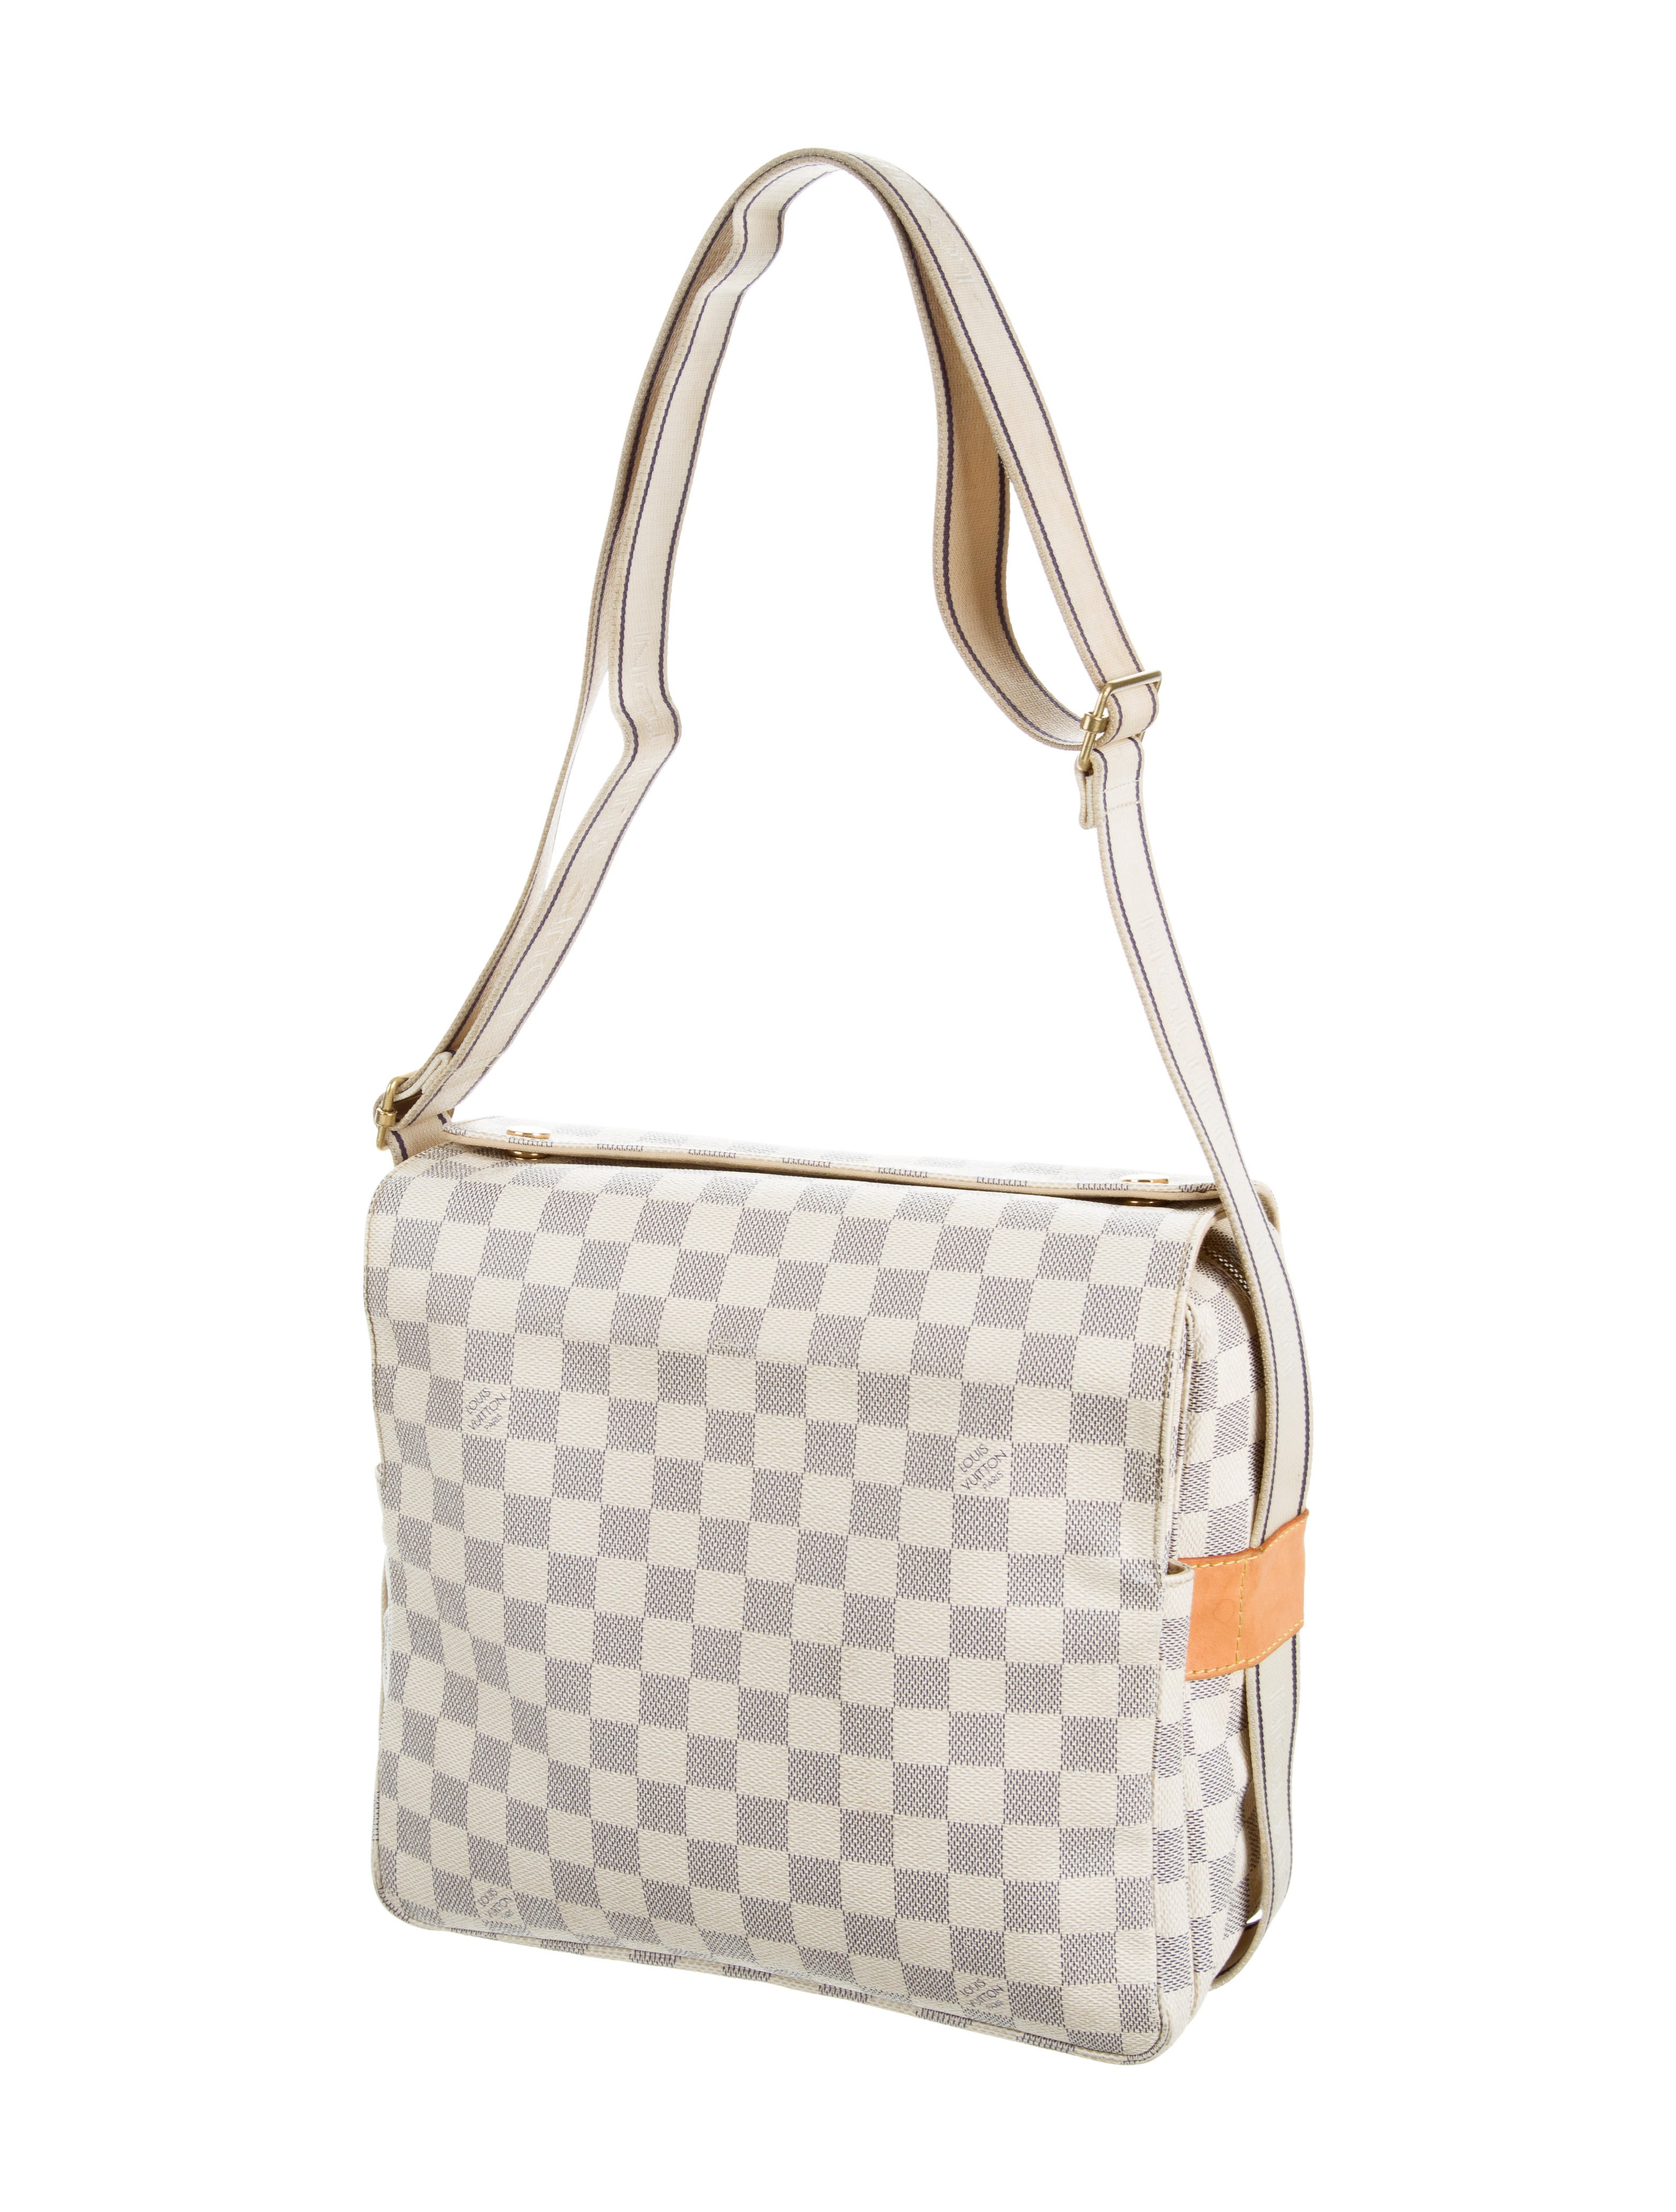 Elegant Louis Vuitton Monogram Abbesses Messenger Bag - Handbags - LOU106985 | The RealReal